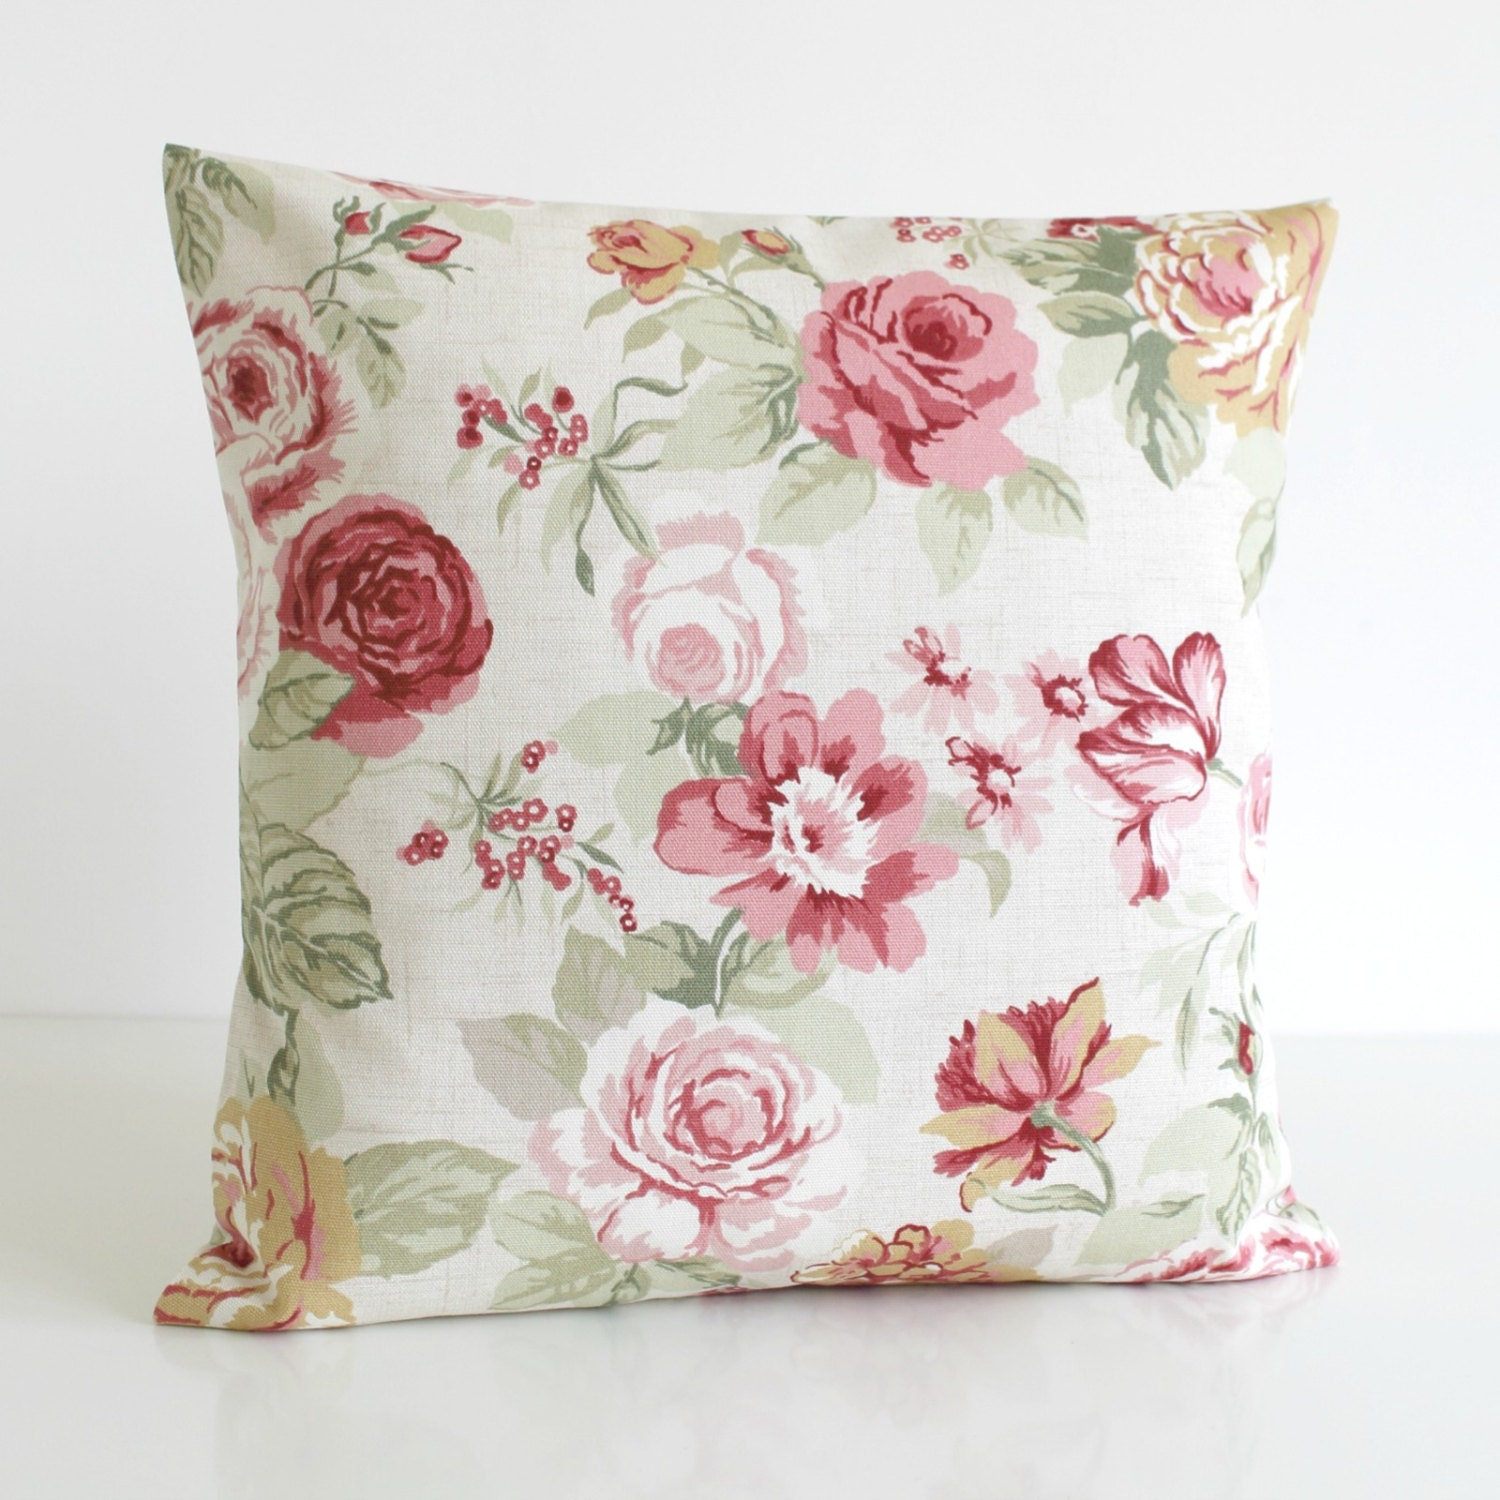 Shabby Chic Lumbar Pillows : Shabby Chic Decorative Pillow Cover Floral Cushion by CoupleHome